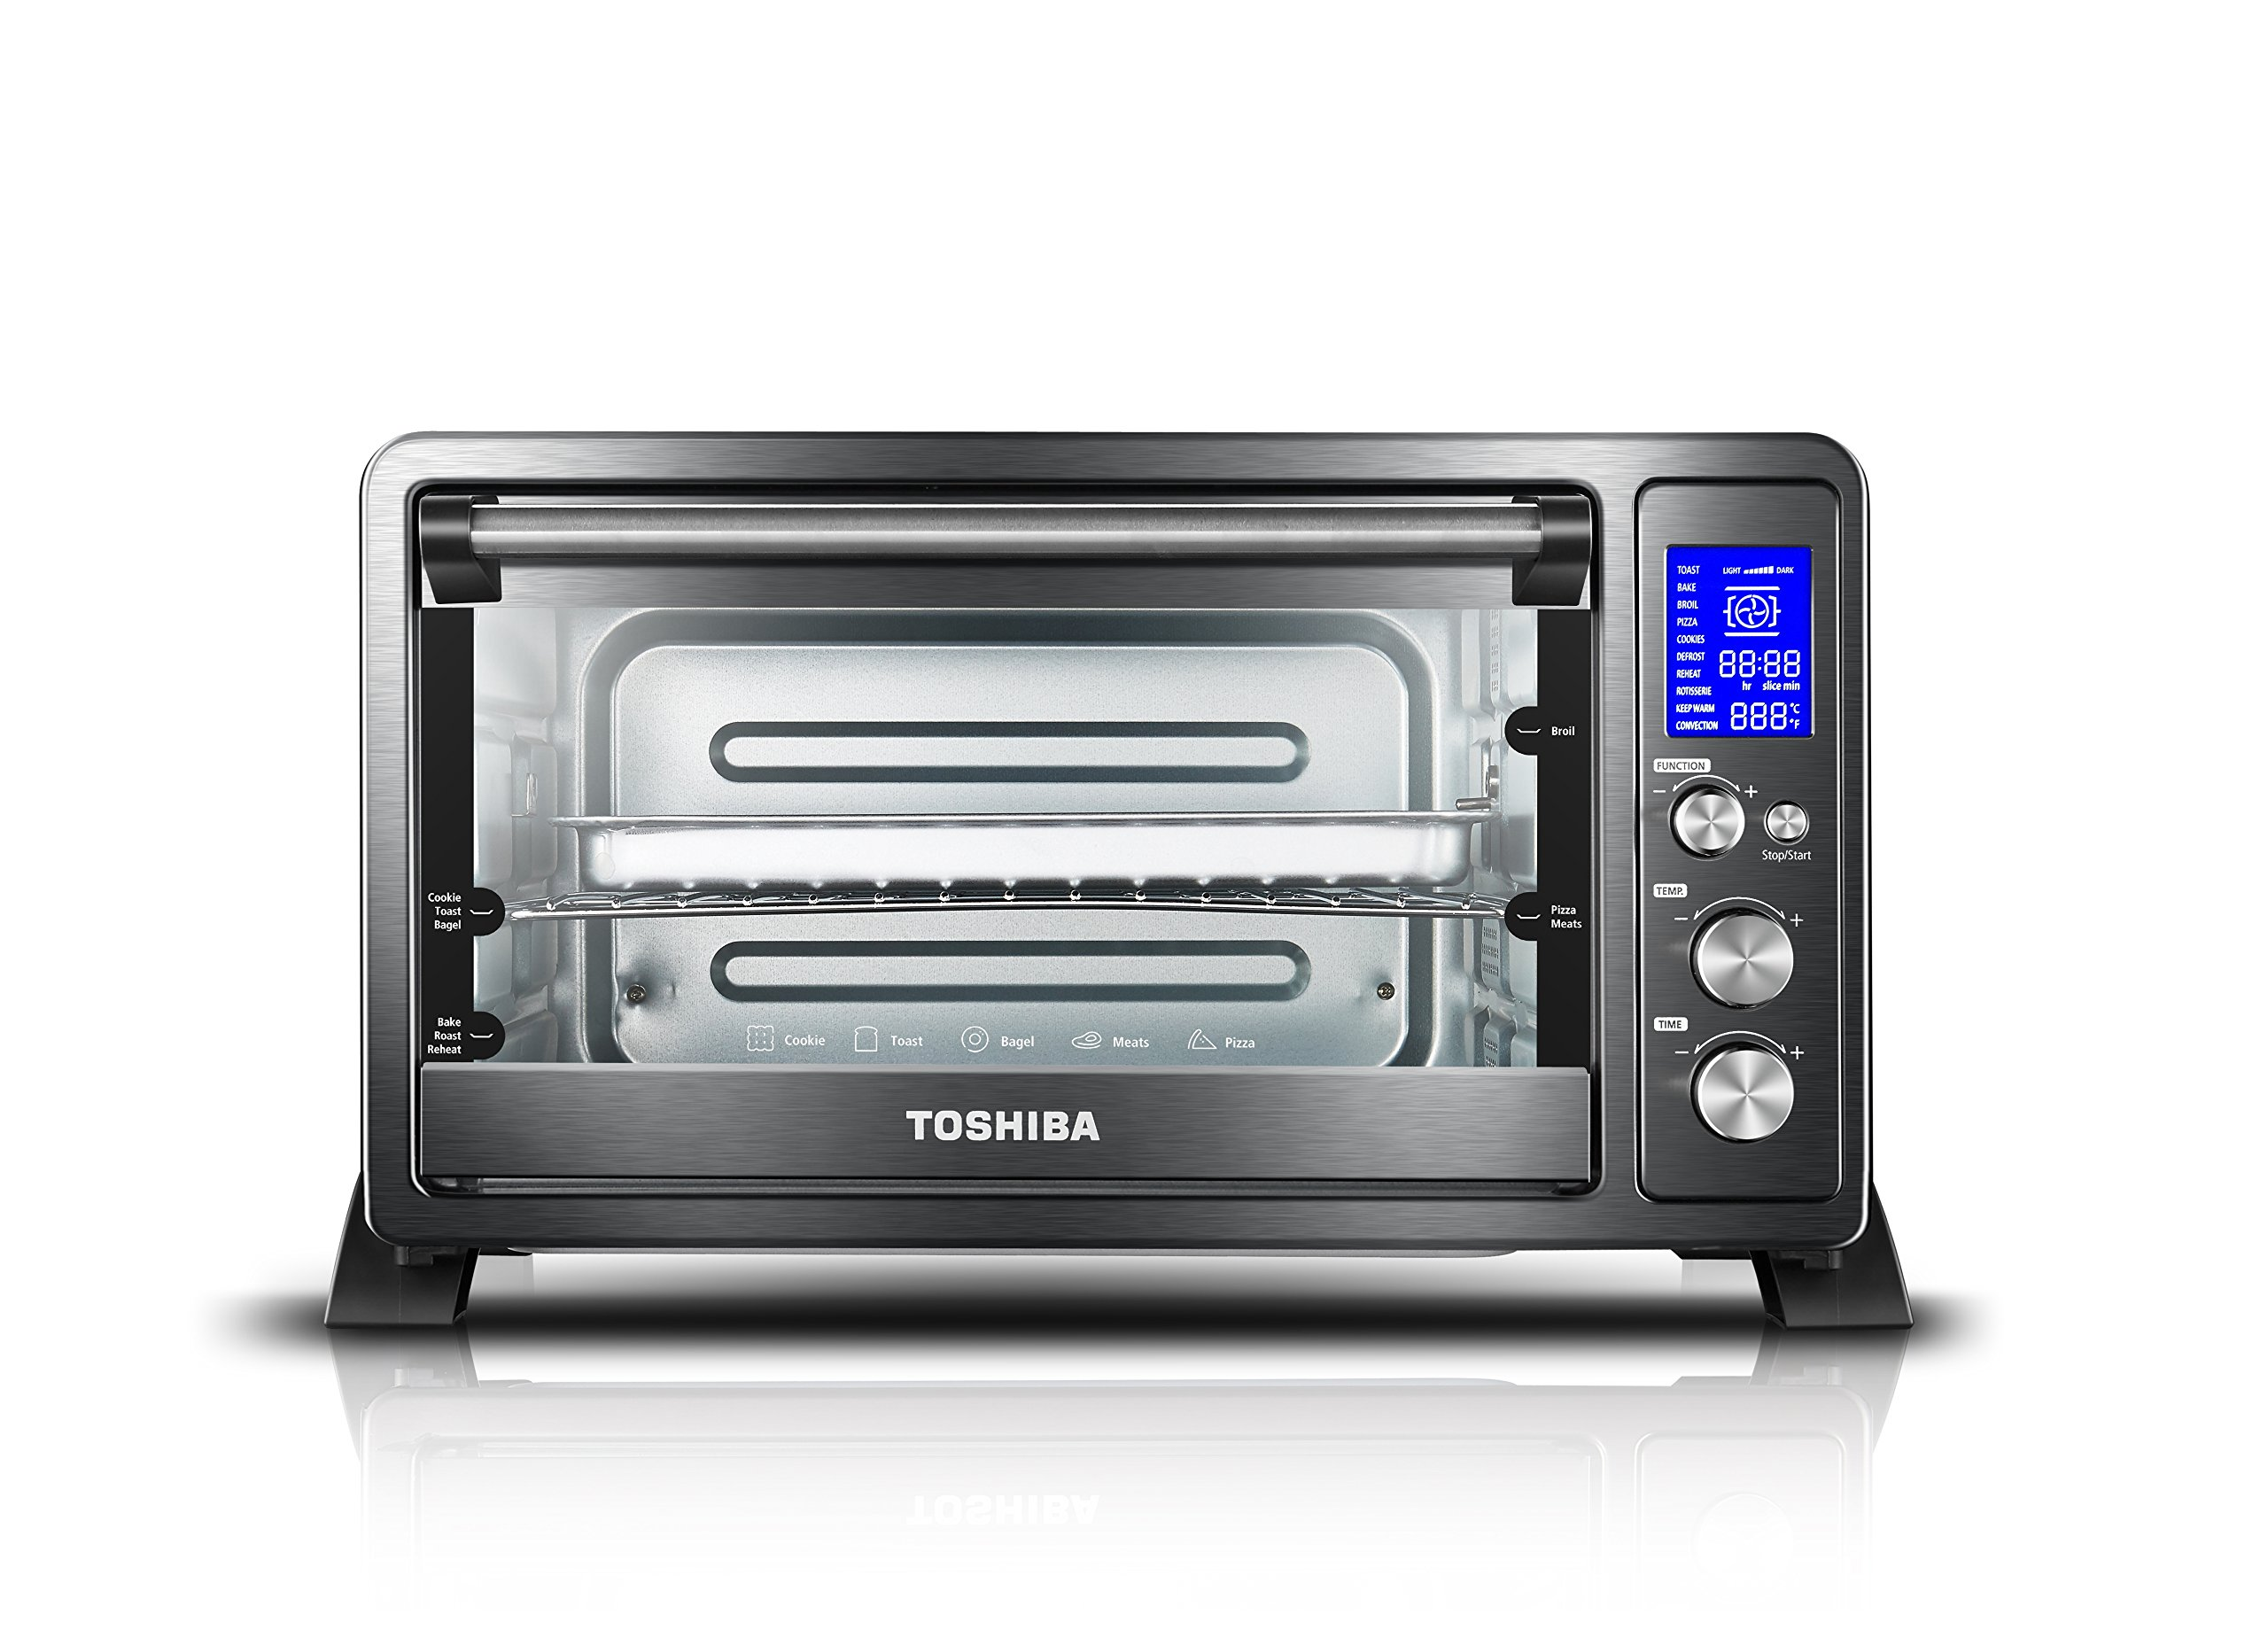 Toshiba AC25CEW-BS Digital Oven with Convection/Toast/Bake/Broil Function, 6-Slice Bread/12-Inch Pizza, Black Stainless Steel by Toshiba